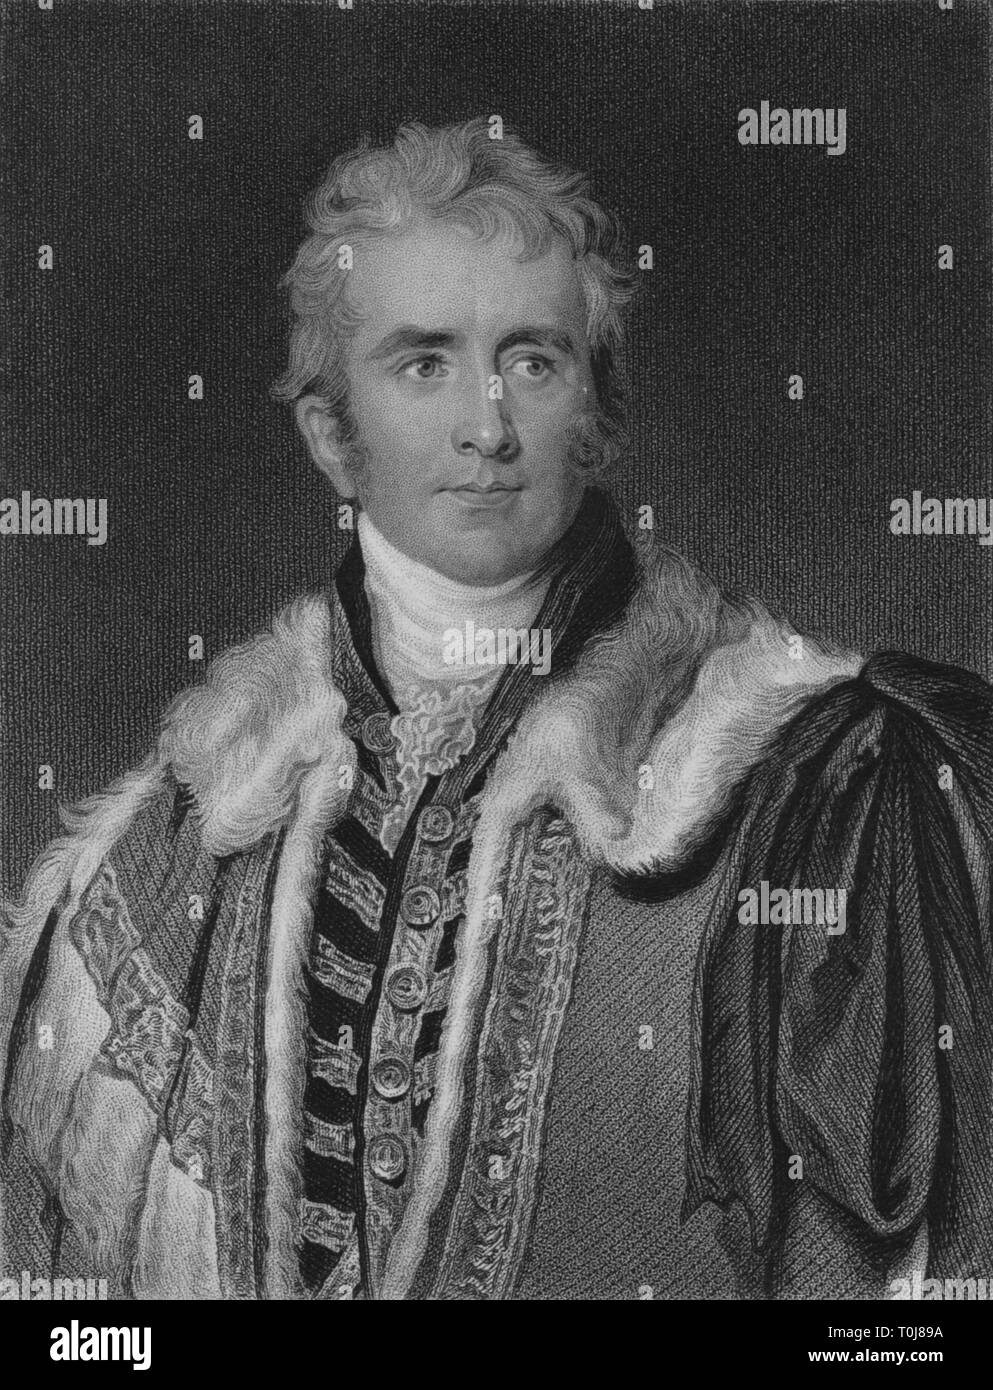 'William Pitt Amherst, Earl Amherst', early 19th century. Portrait of William Pitt Amherst, 1st Earl Amherst (1773-1857). Governor-general of India. Amherst was sent as Ambassador to China in 1816, but as he refused to perform the ceremony of kow-tow, which Europeans considered degrading, he was not permitted to enter Peking. Pitt was Governor-General of India from 1823-1828, and was created Earl Amherst of Arakan in 1826. [Fisher, Son & Co., London] - Stock Image